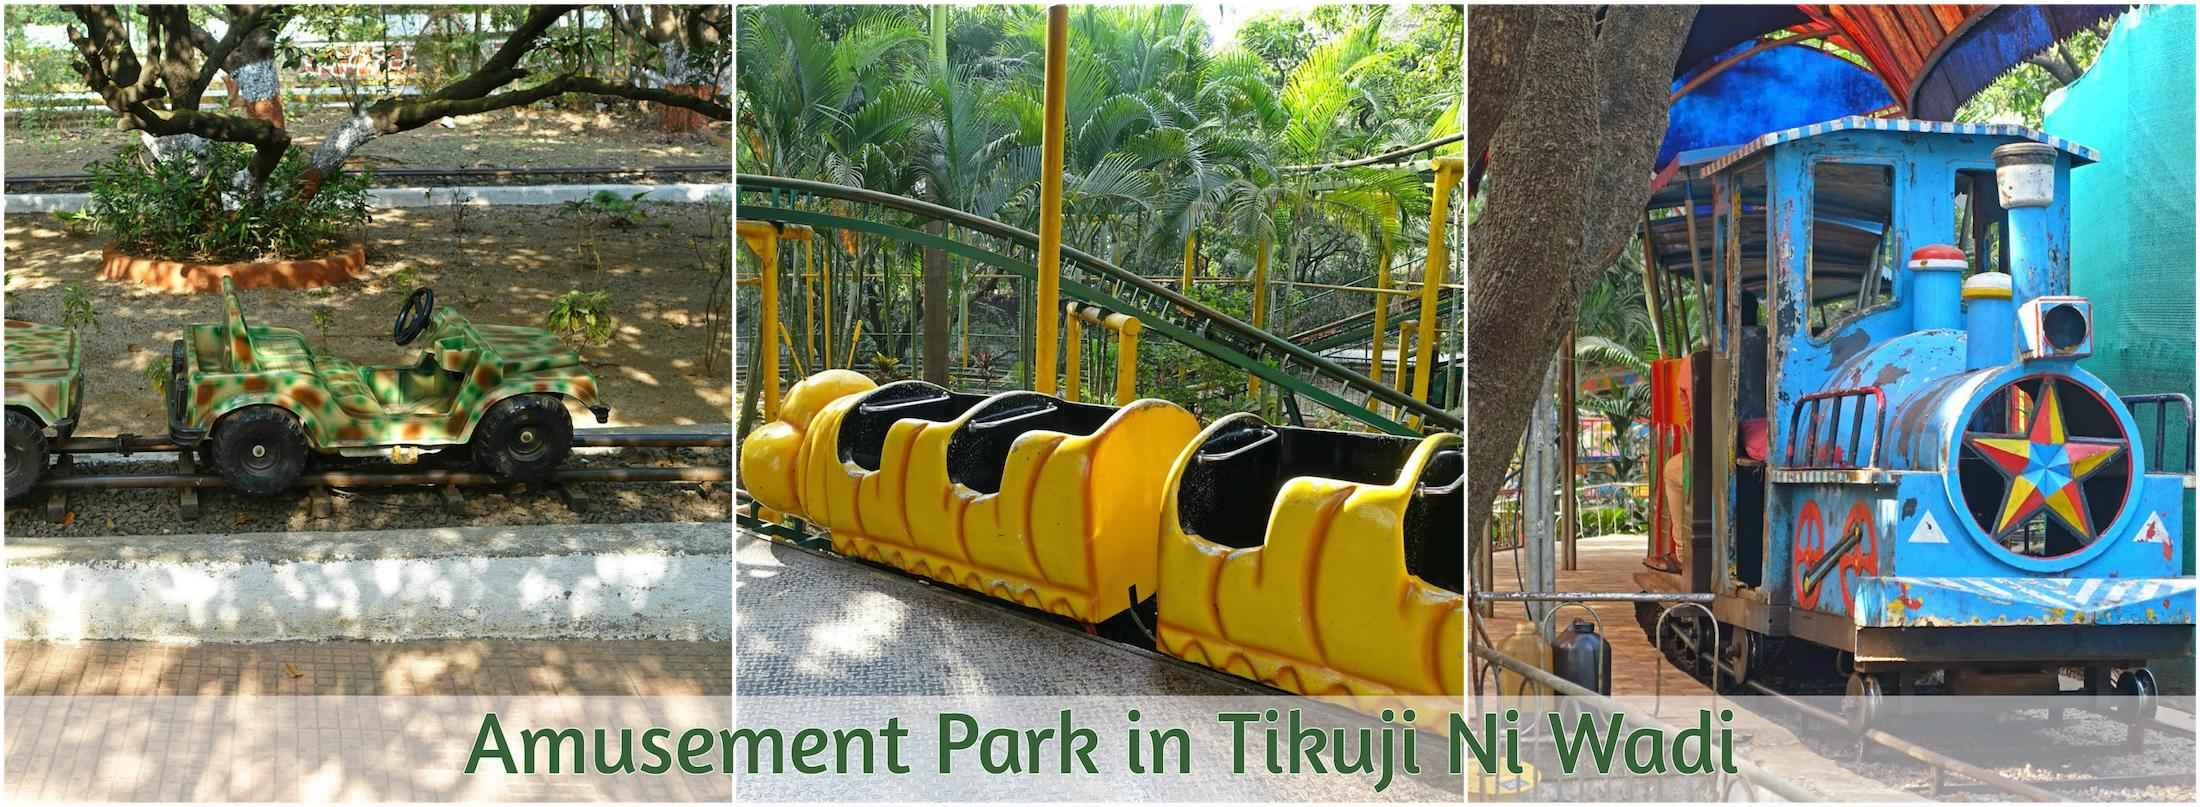 Amusement-Park-at-Tiku-ji-ni-wadi.jpg